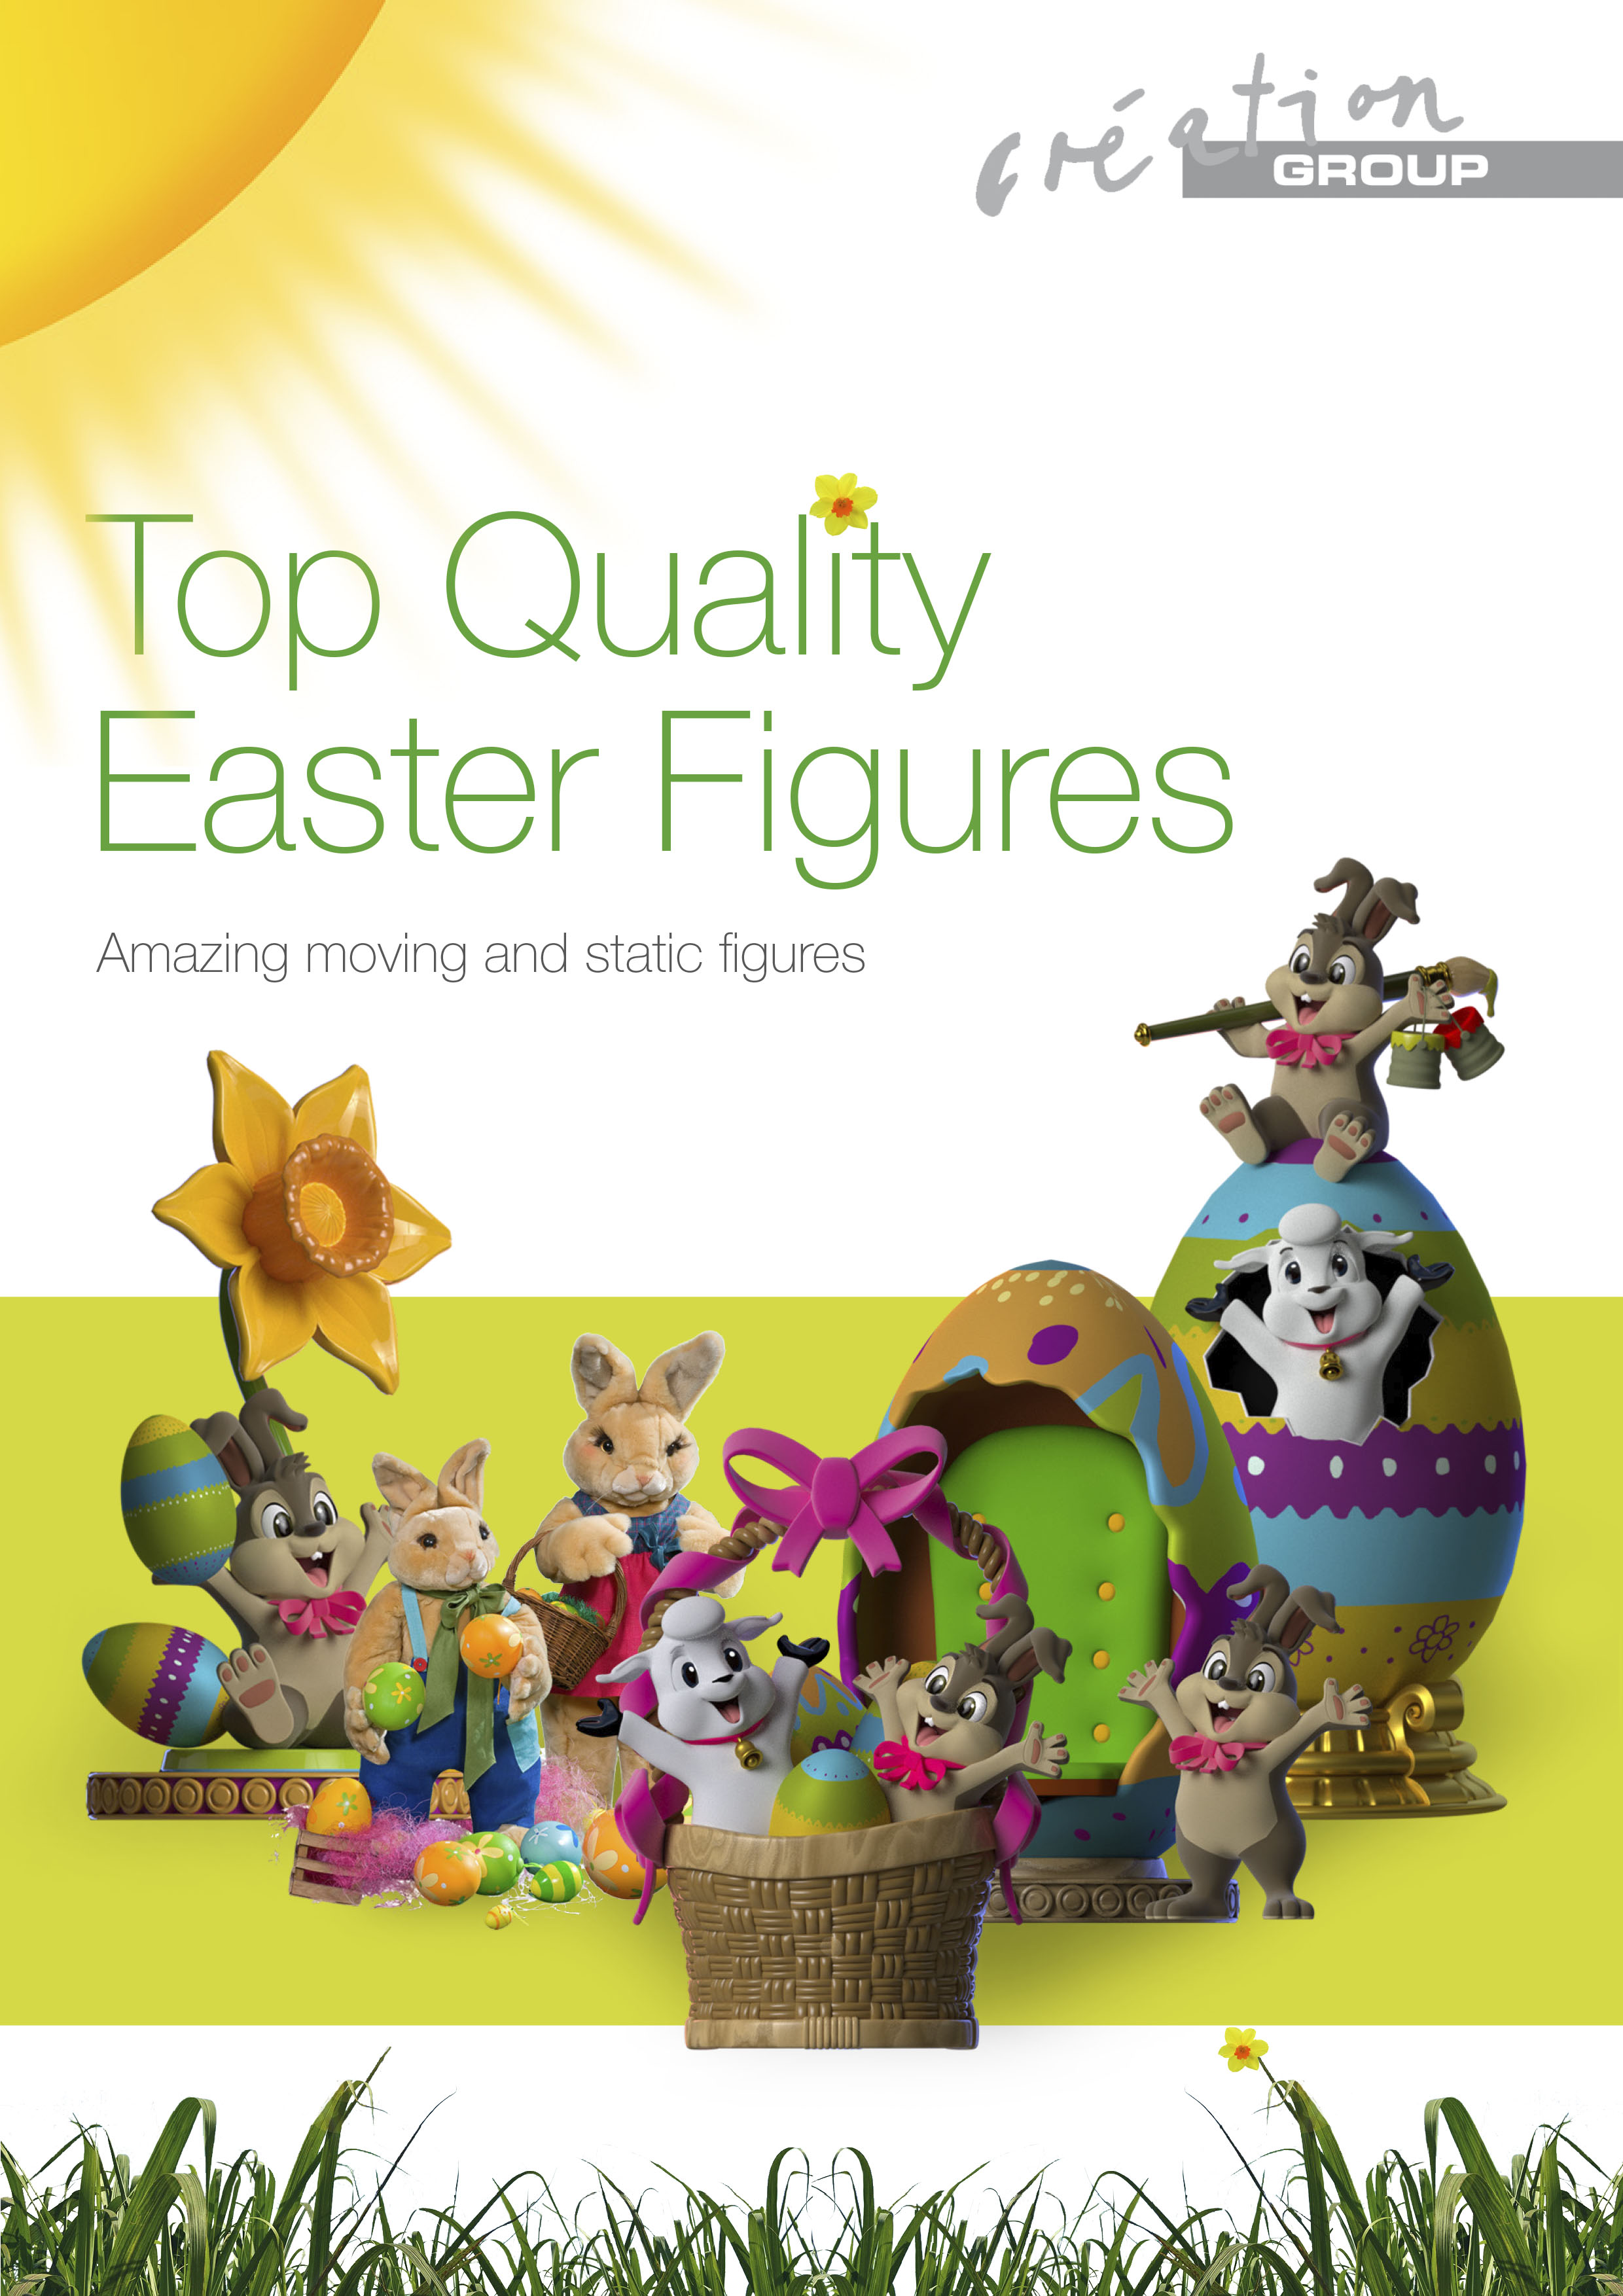 Animated figures and fiberglass figures for Easter from Creation Group